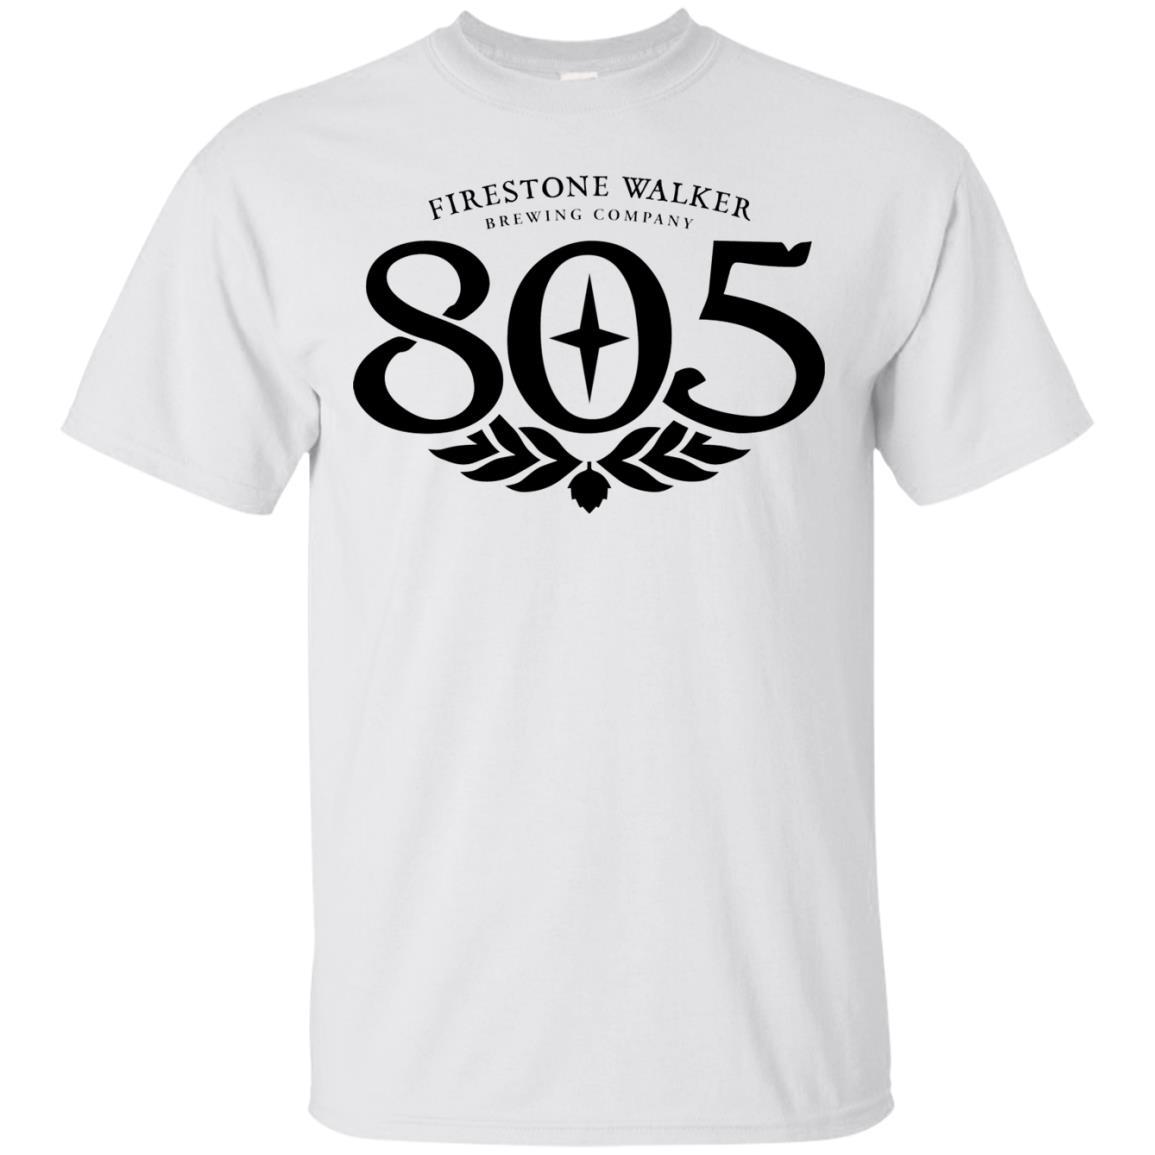 805 Beer Black - T-Shirt Style / Color / Size